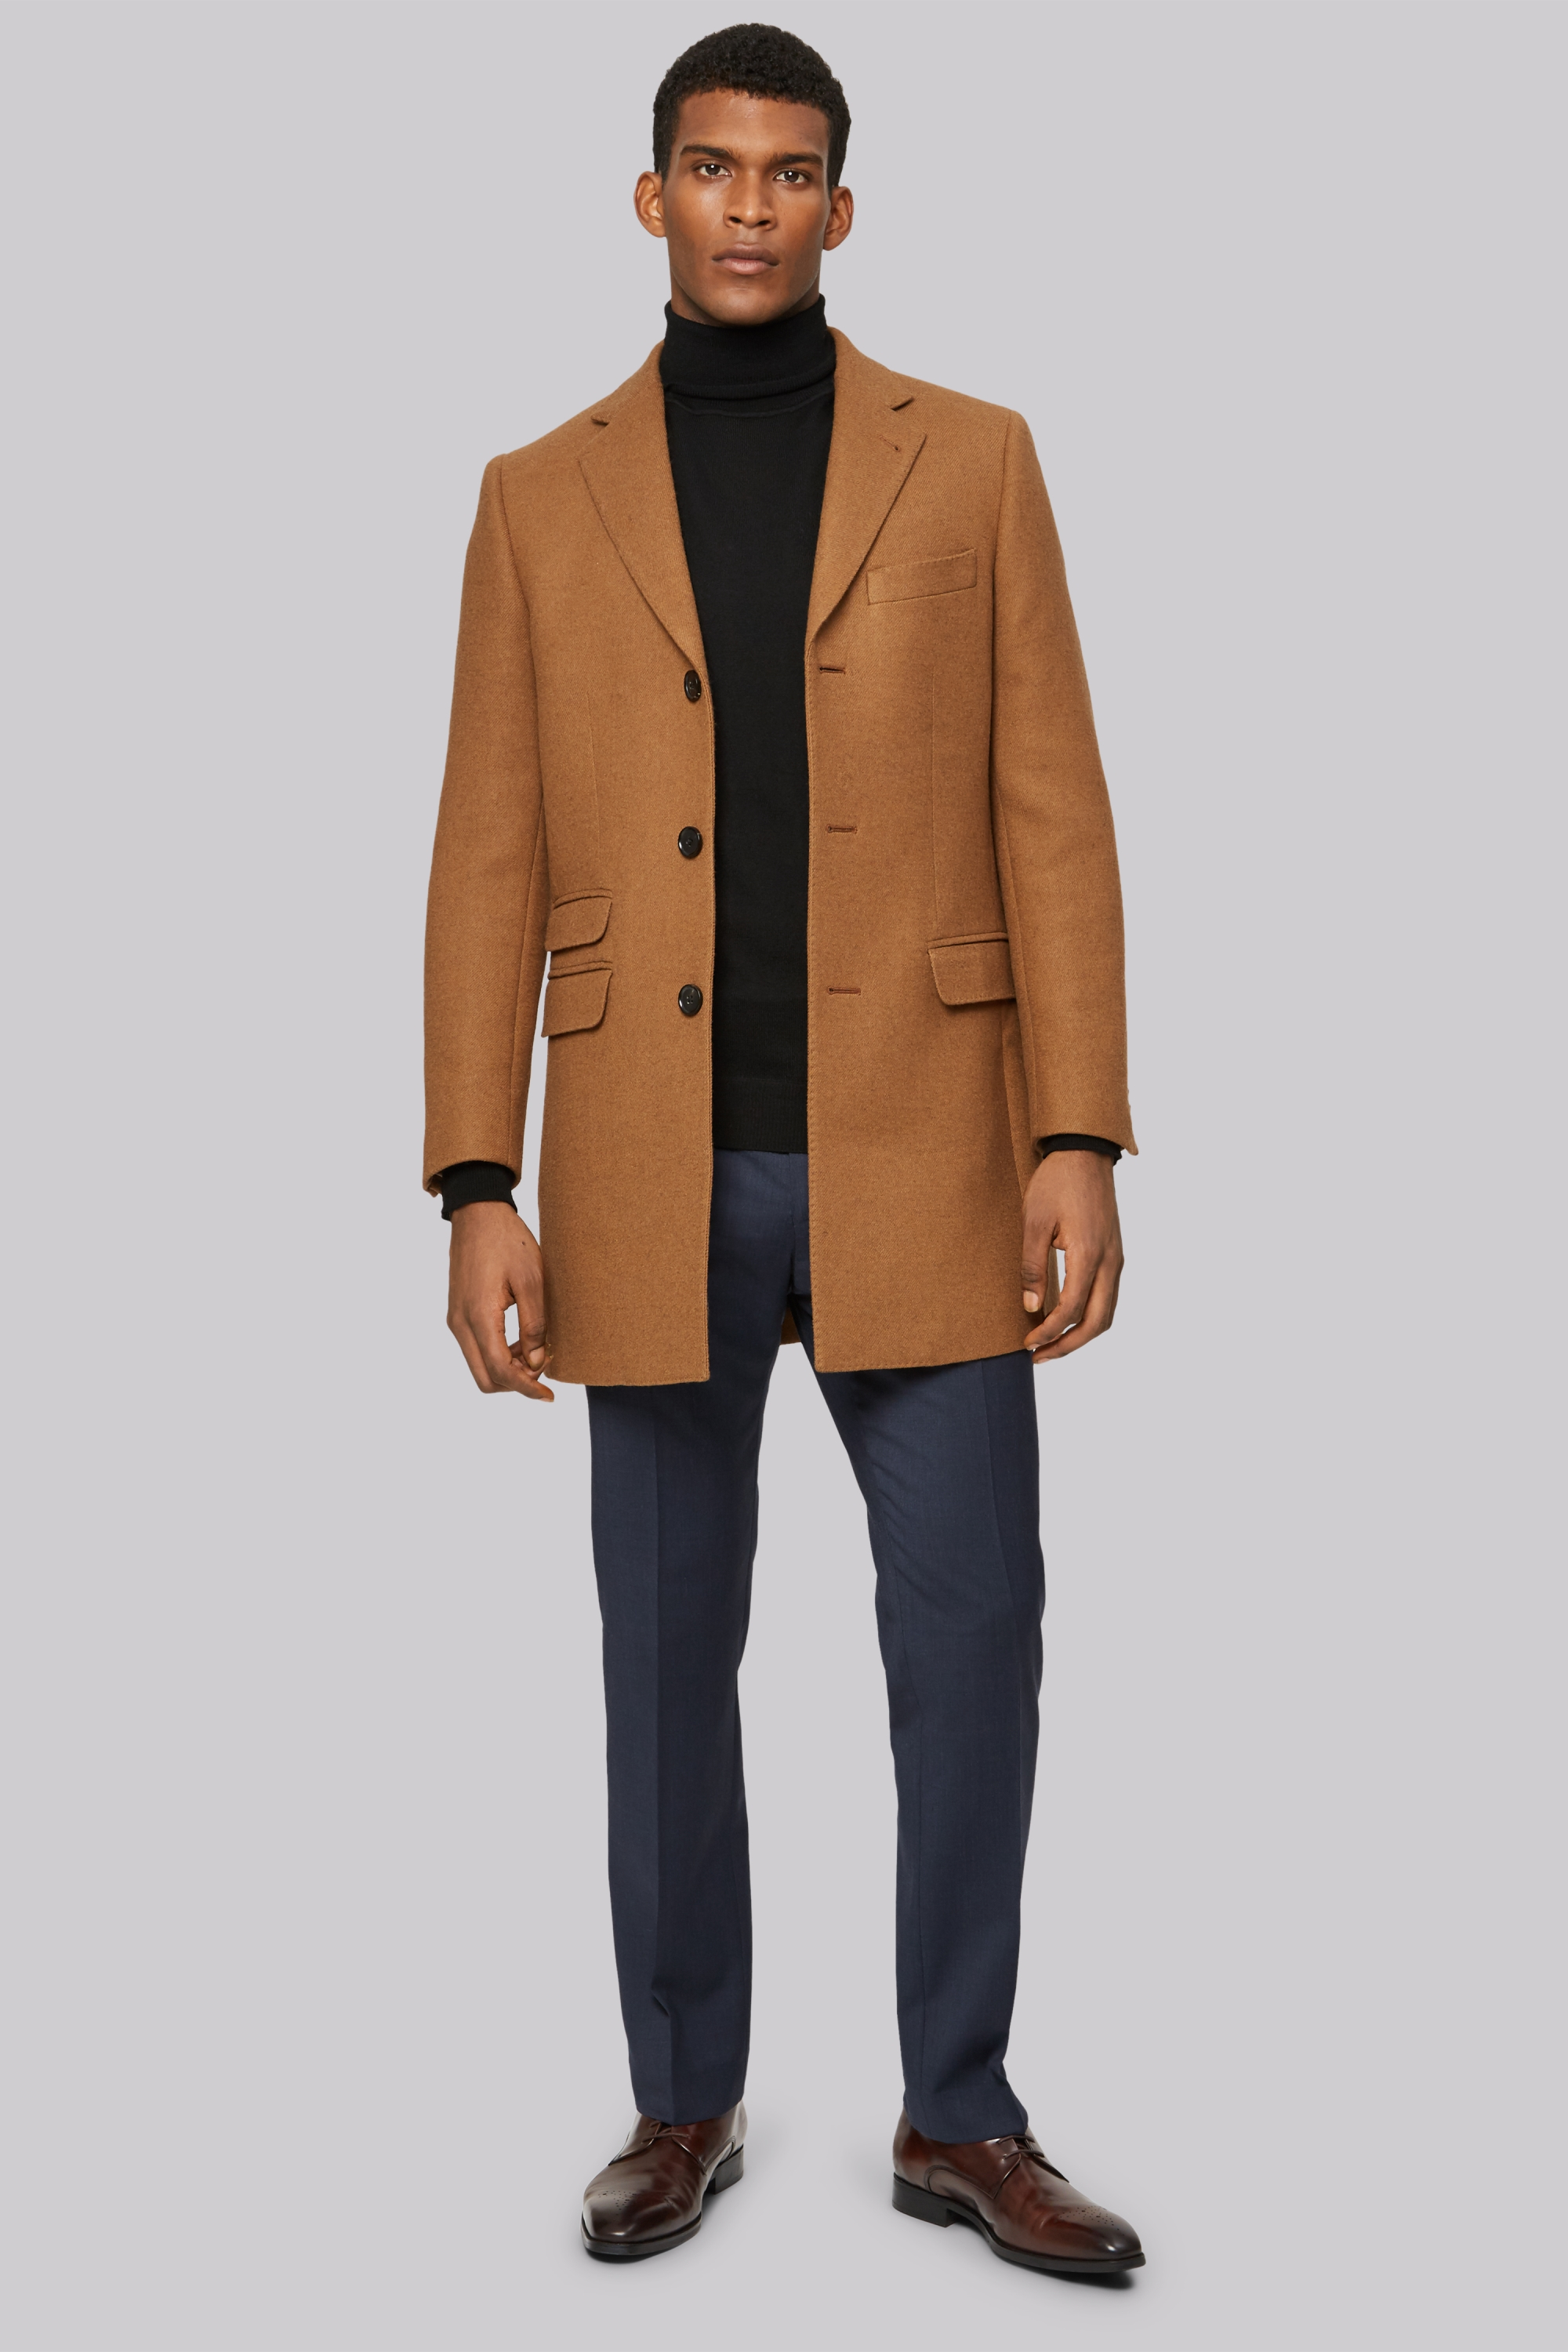 Shop men's overcoats & jackets at HUGO BOSS. Find the ideal dress coat, casual jacket, pea coat, cashmere or wool blend coat for a flawless cold-weather look.